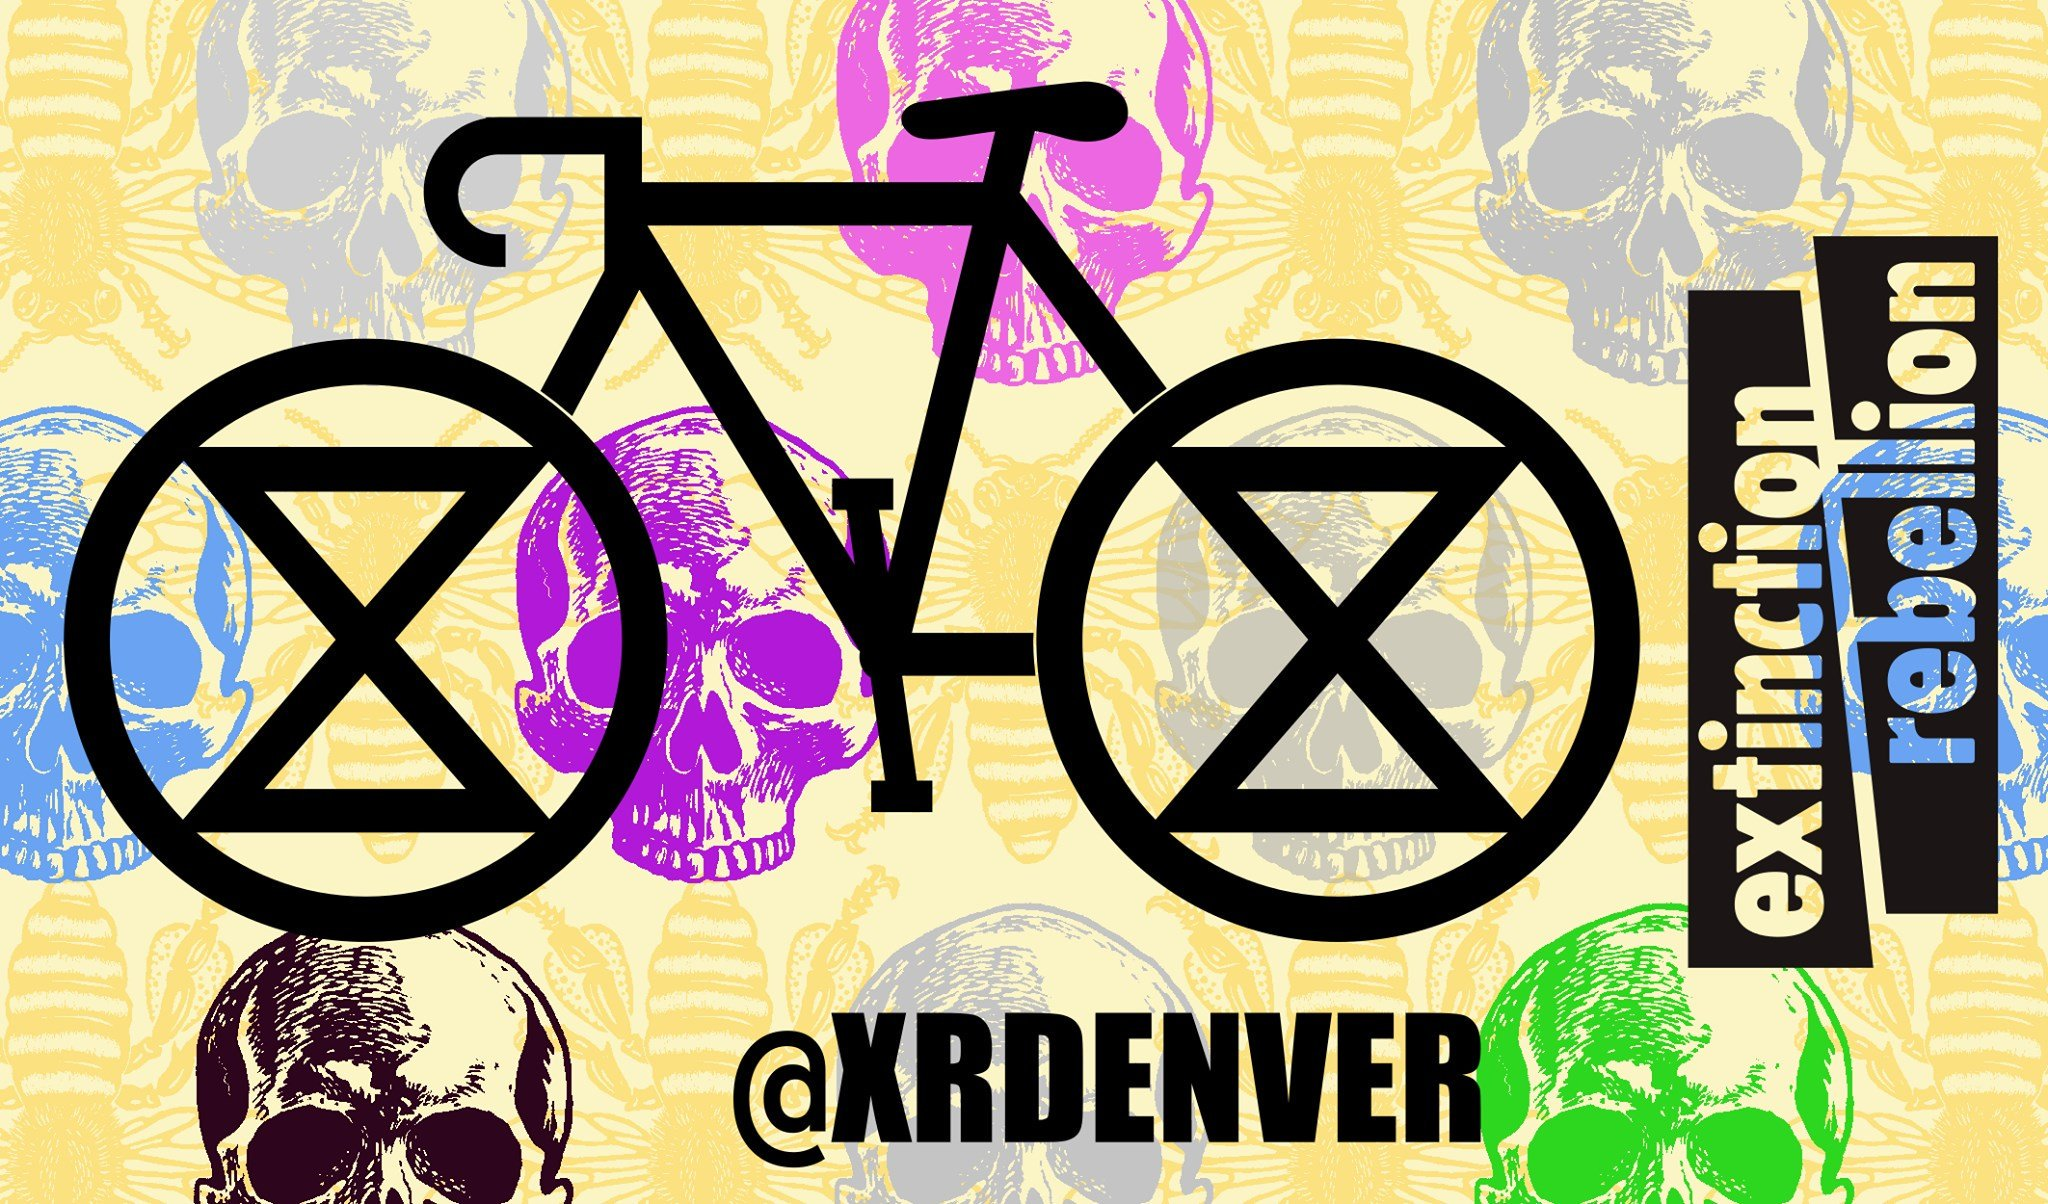 "Join #ExtinctionRebellion for a night of slow-rollin' rebellion and community-buildin' fun at our Climate #CriticalMass bike ride. When: This Friday, August 16th, 6:30 PM – 8 PM Where: Denver Skate Park ""DPark"" 2205 19th St, Denver, Colorado 80202 https://t.co/BORHdDAlsQ"